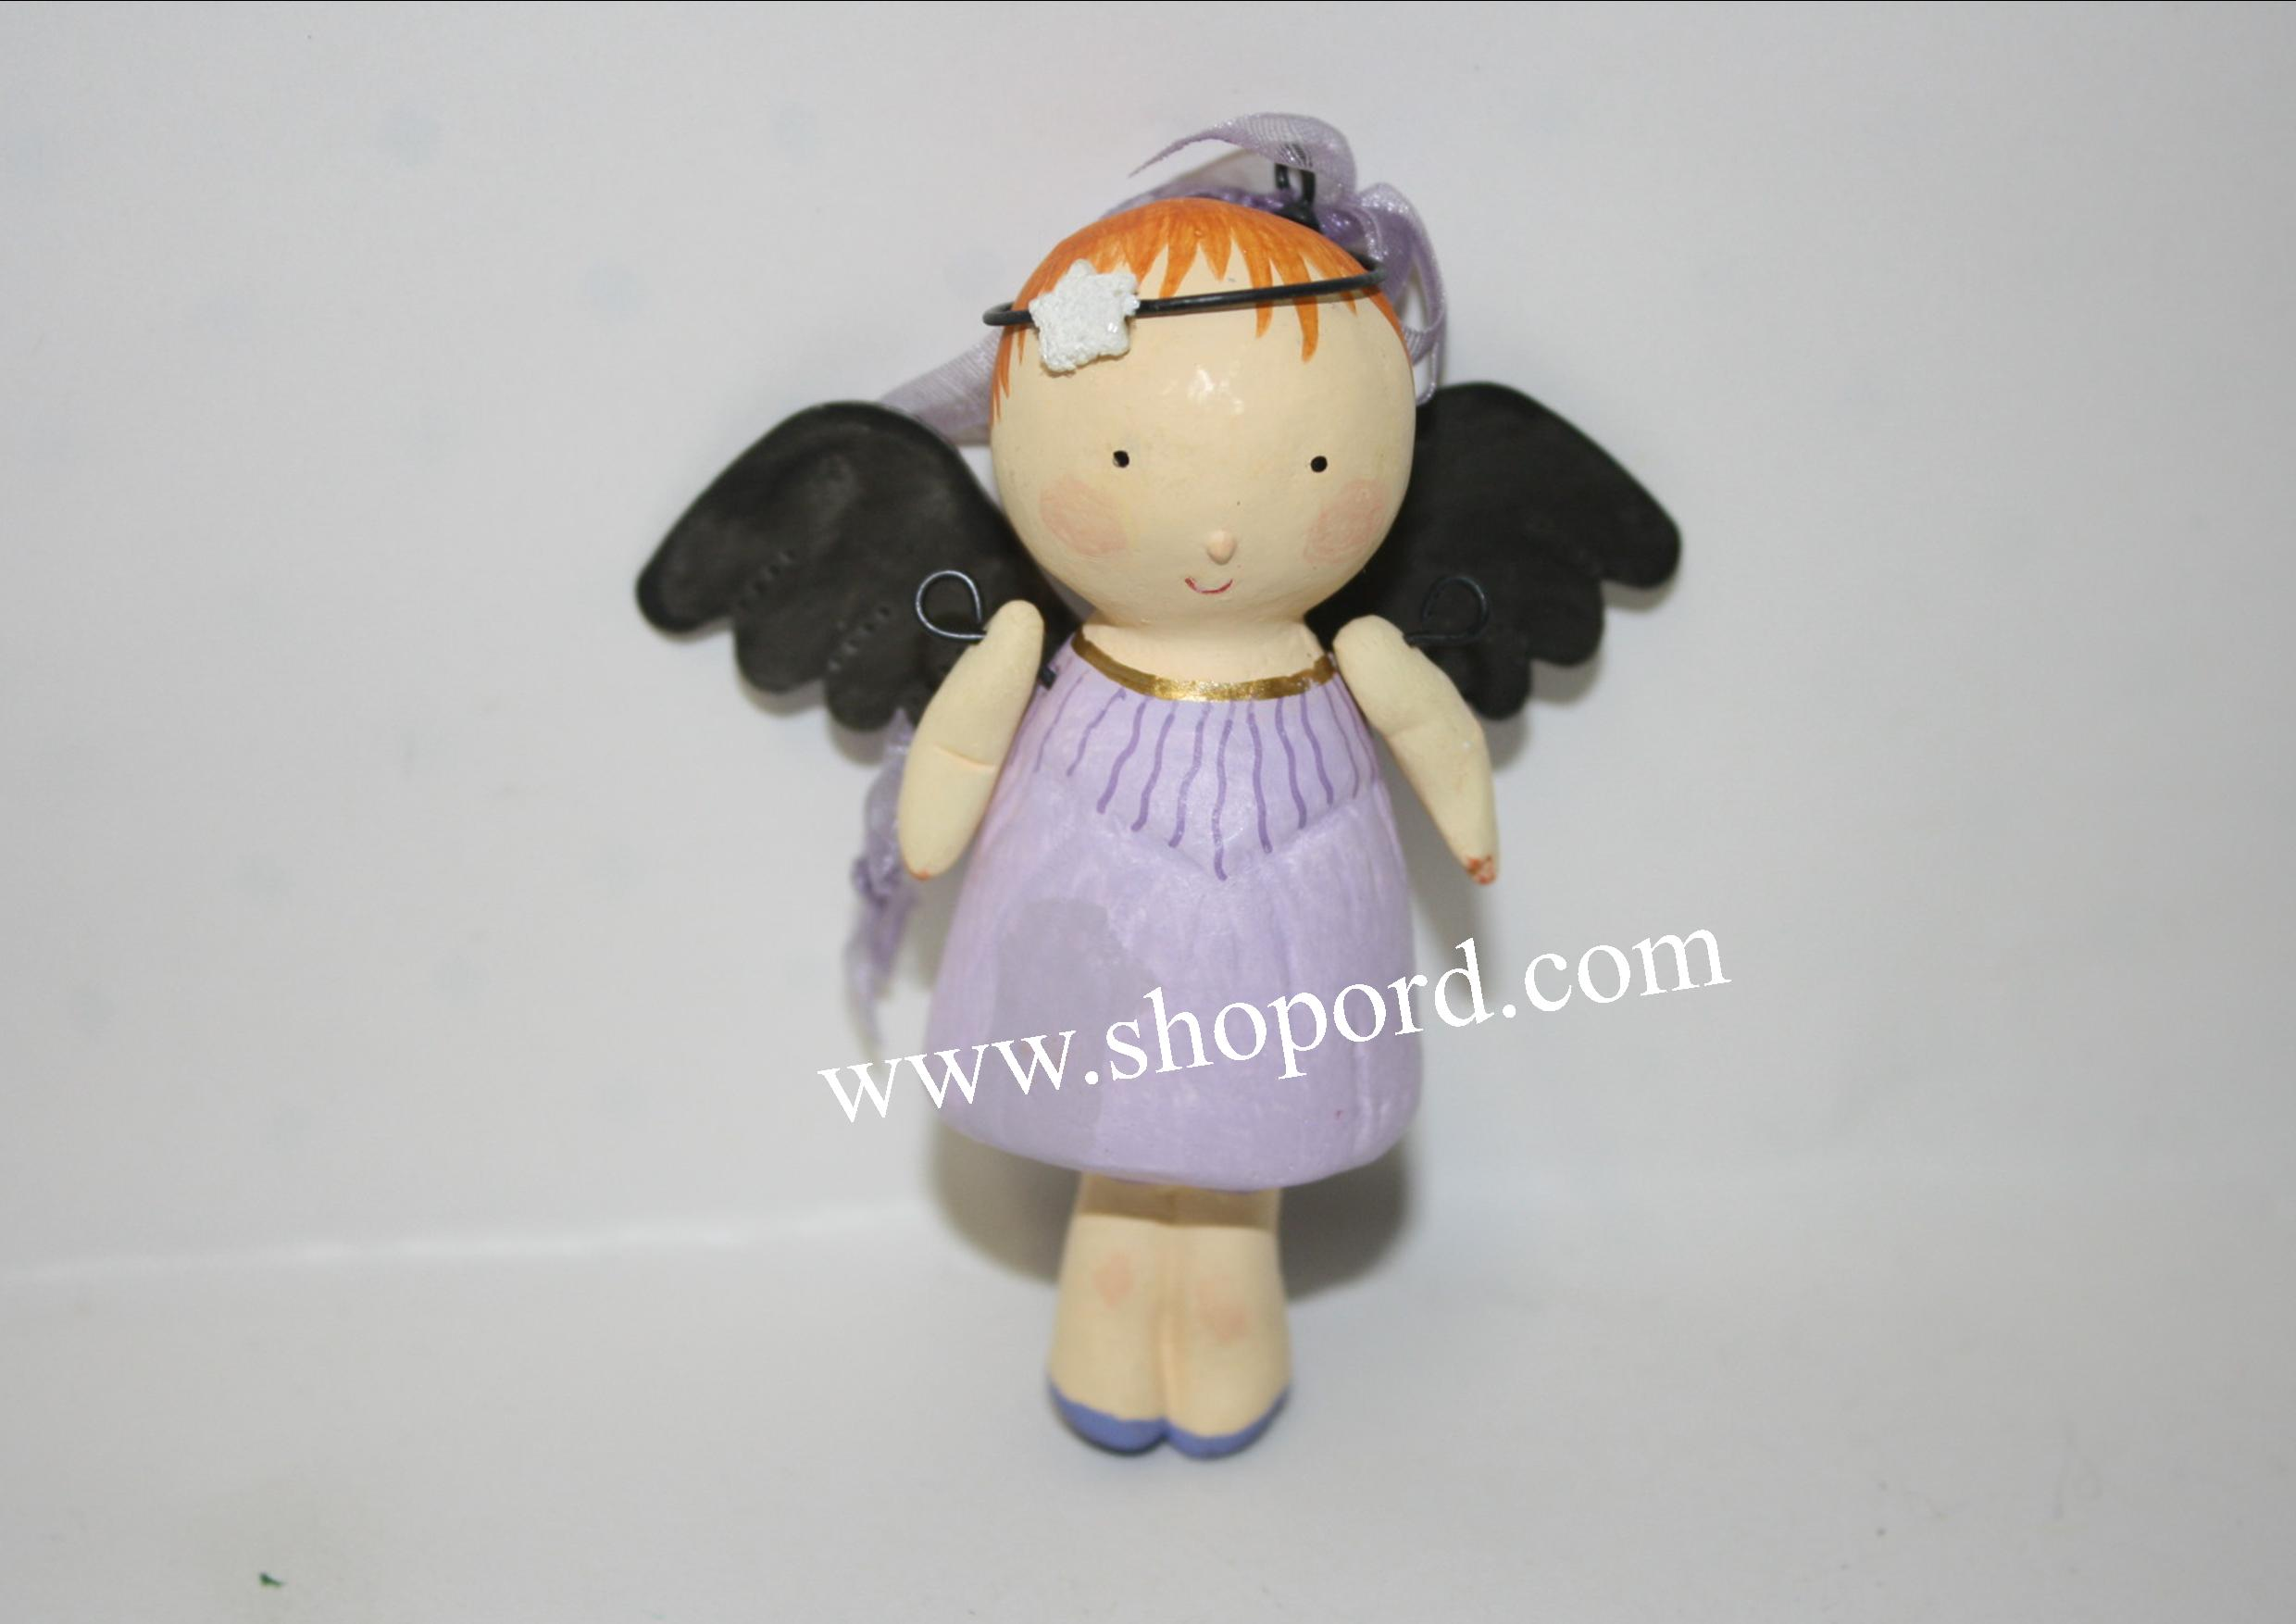 Hallmark 2001 One Little Angel Ornament QX8935 Damaged Box